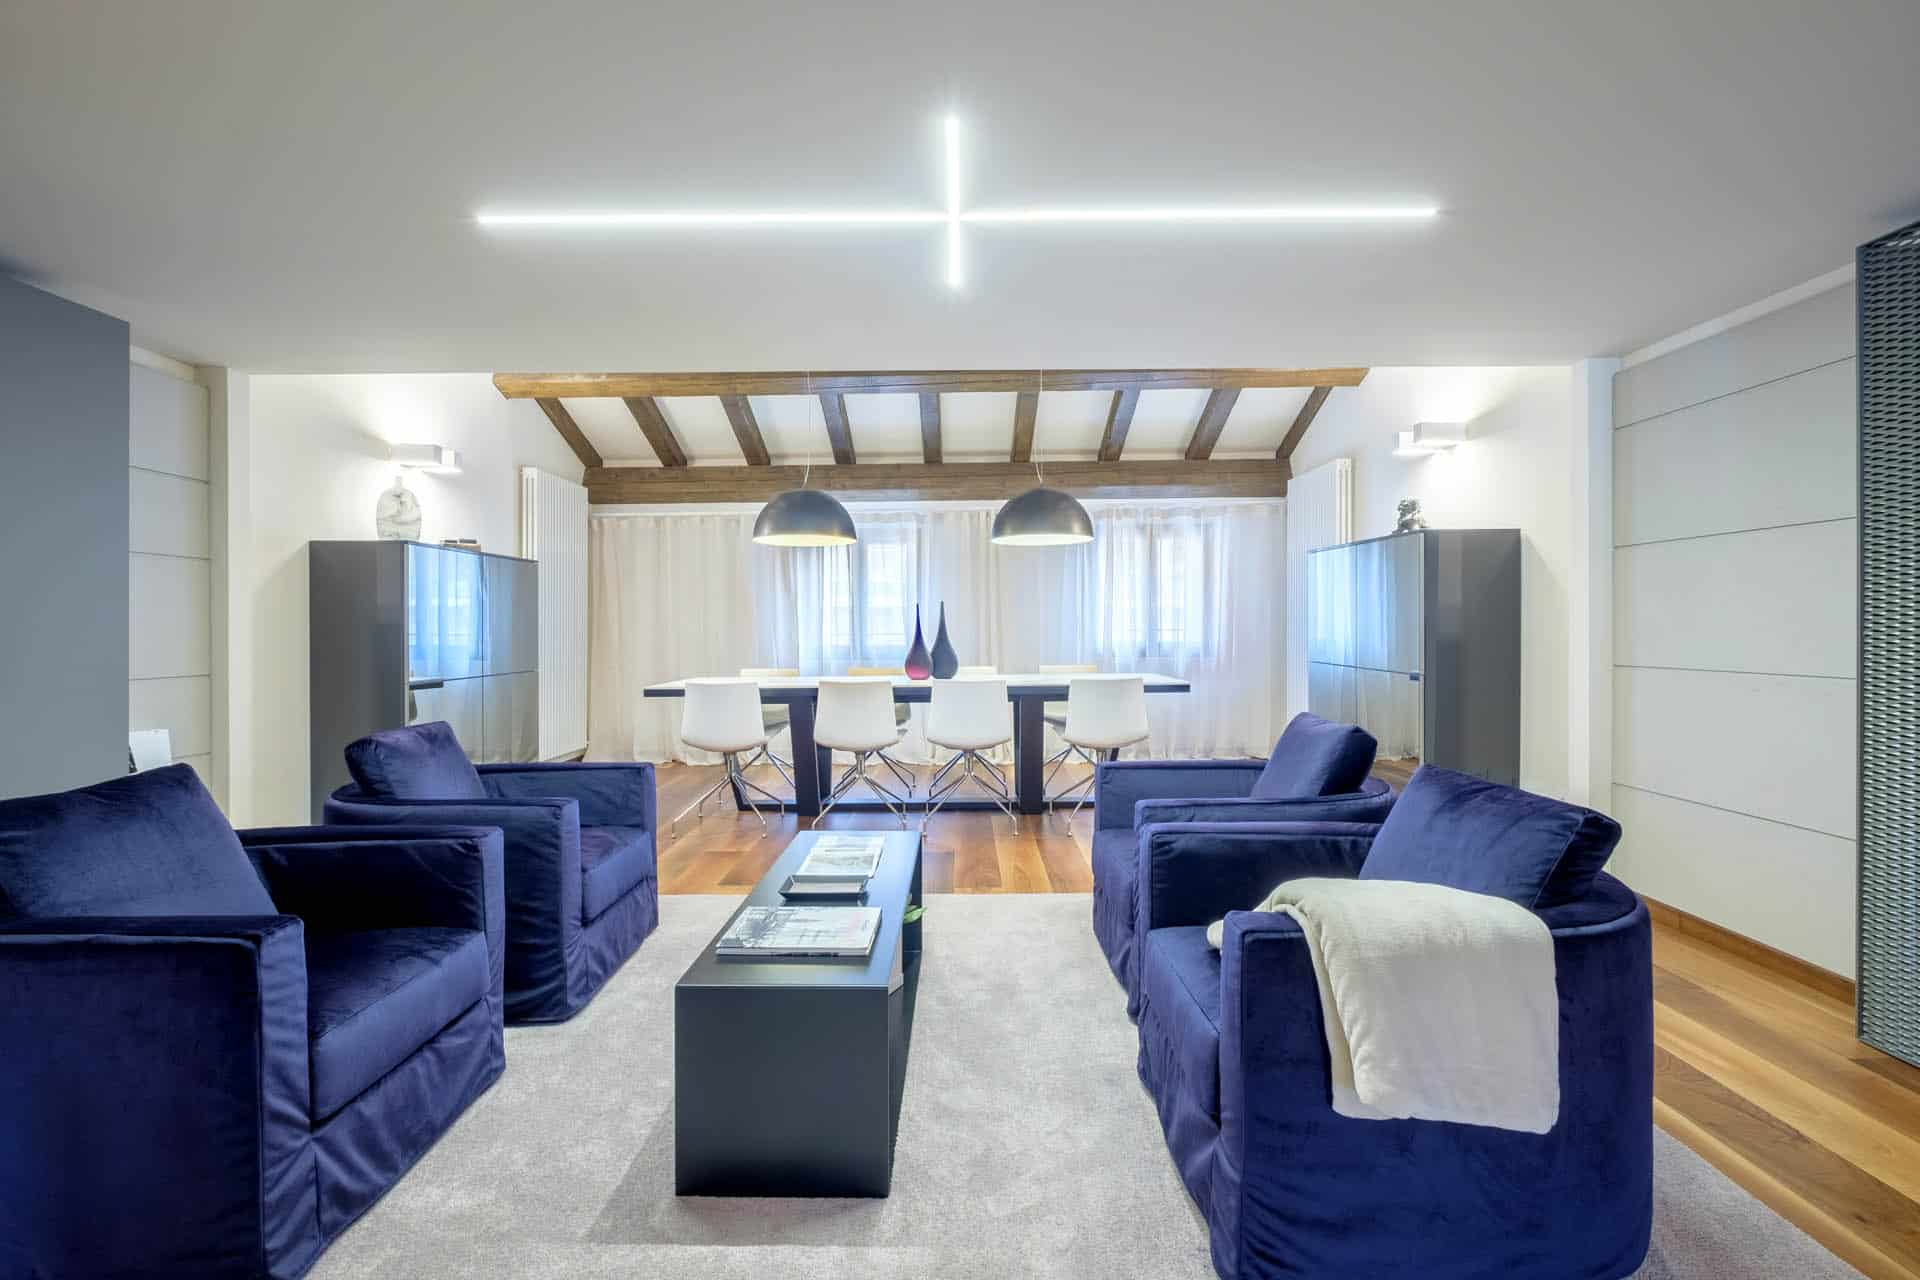 Large living area with lounge chairs and dining table - Ca' Garzoni Moro - Lido Apartment